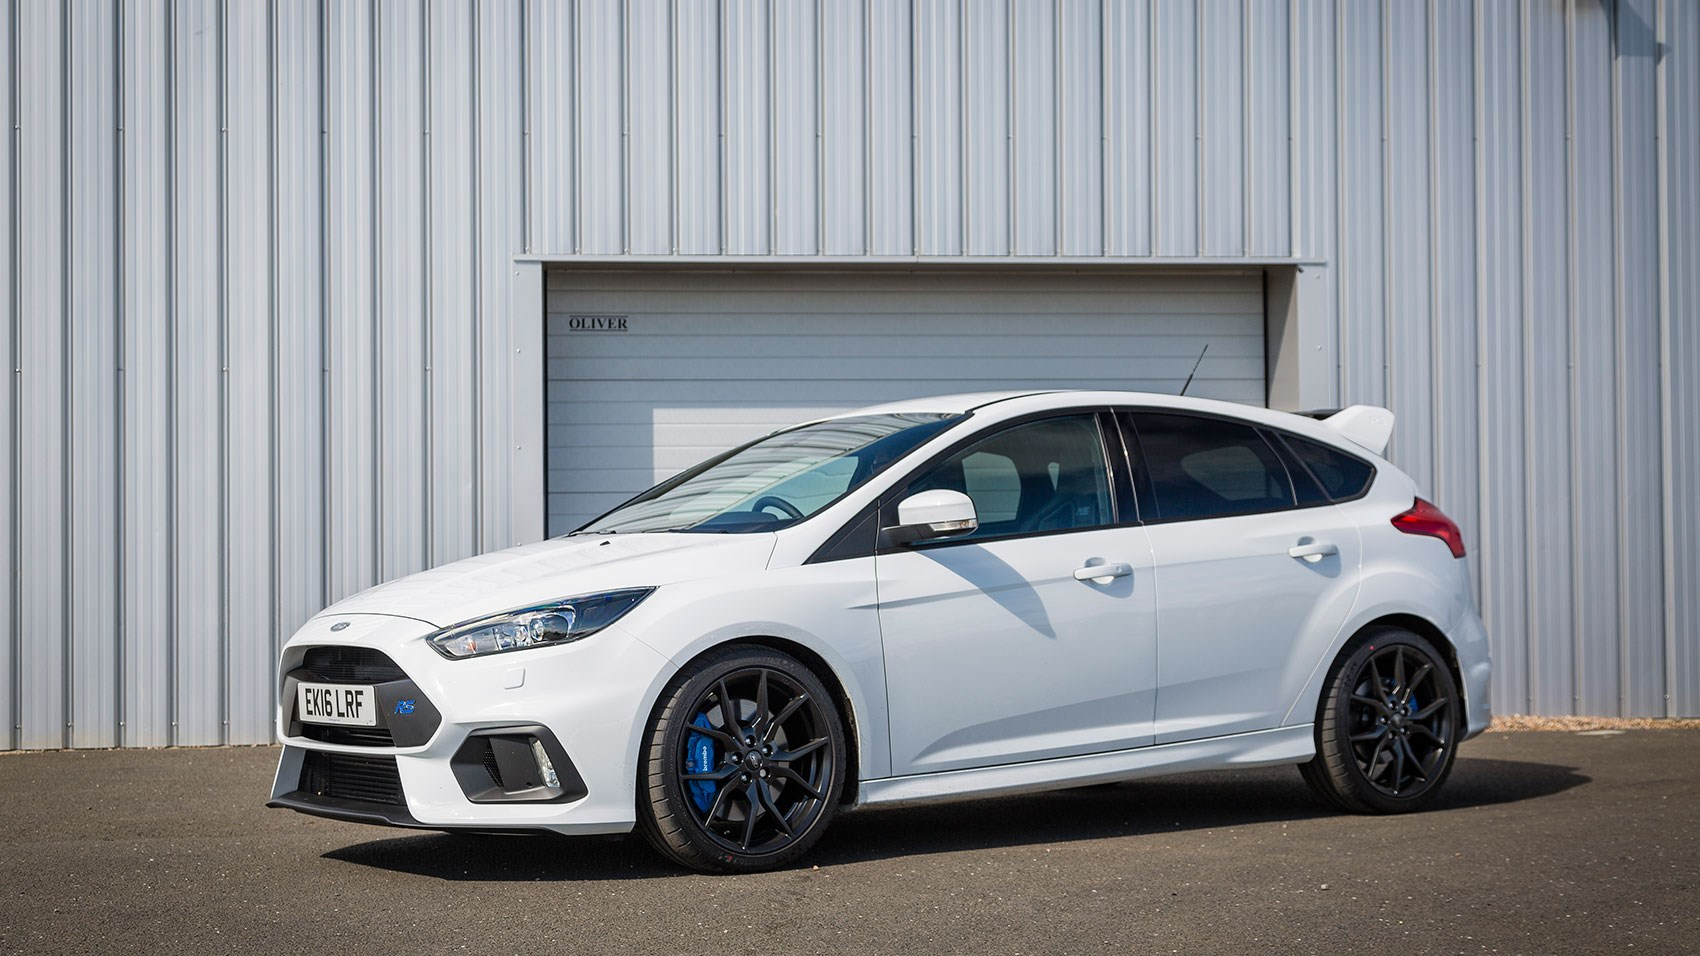 Ford Focus RS Mountune FPM375 review by CAR magazine